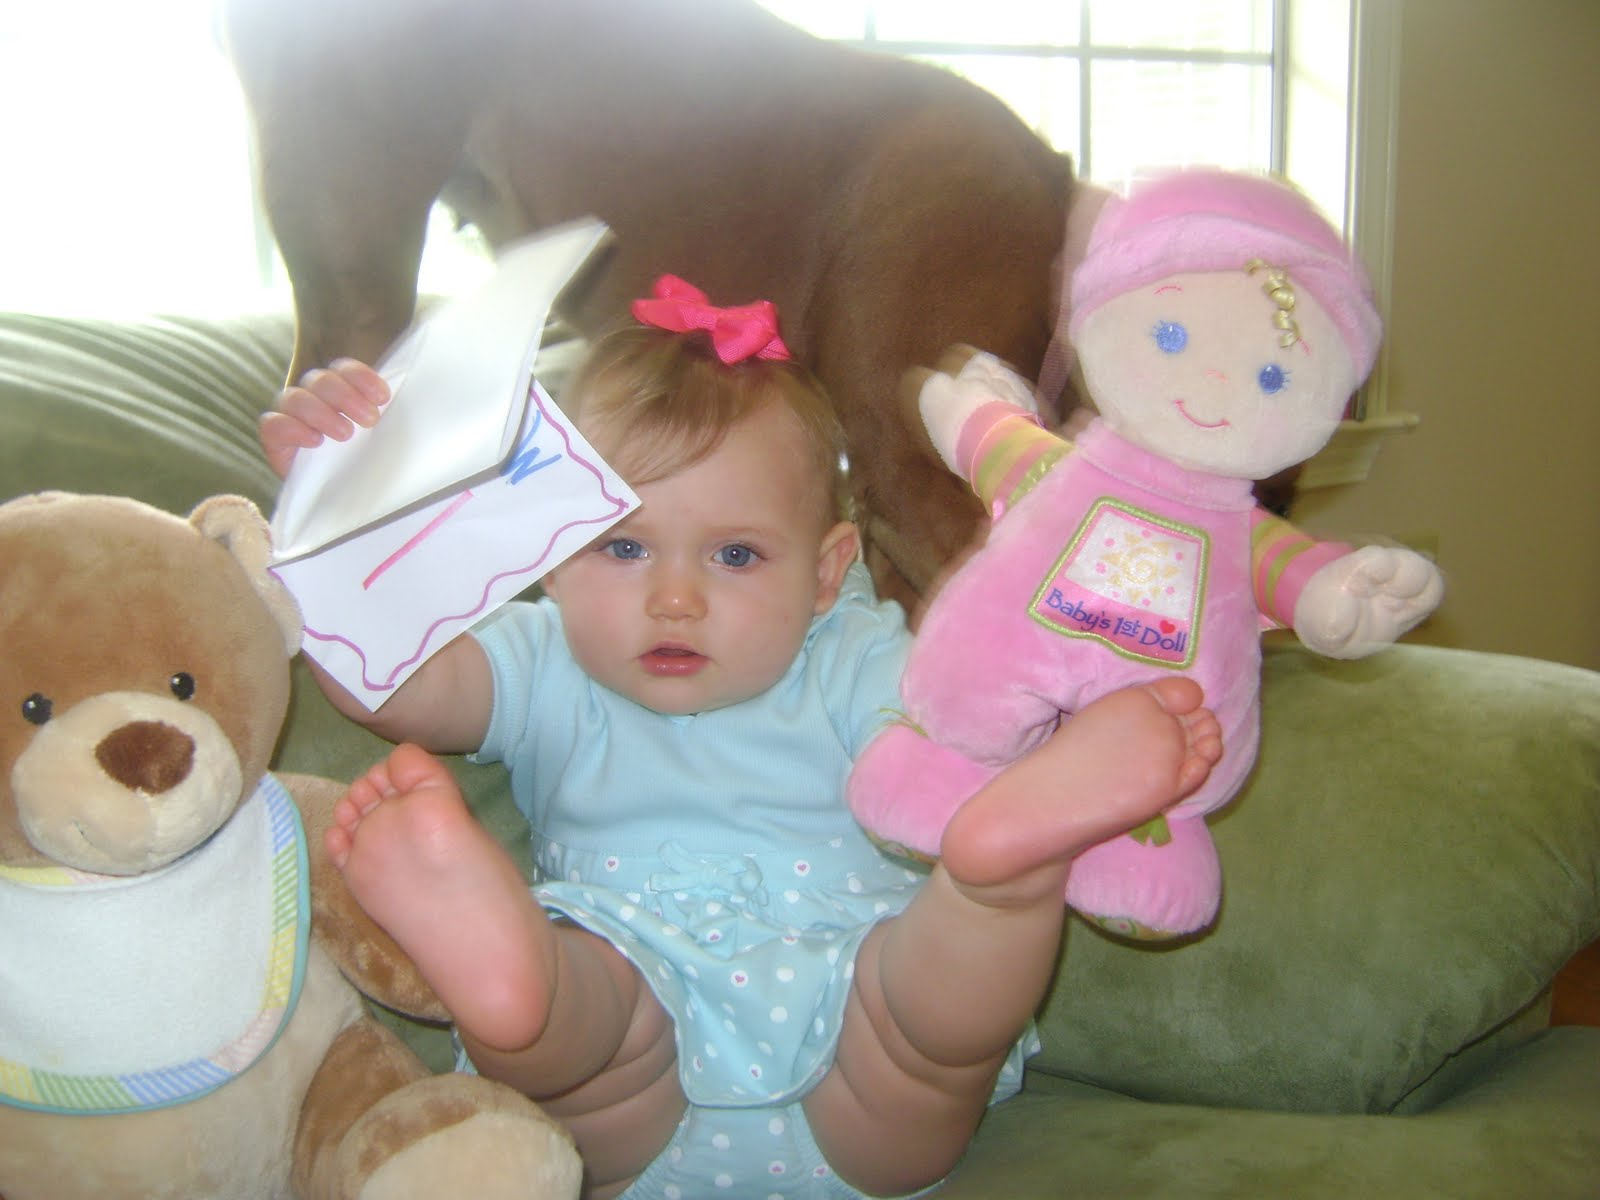 The Joyner Journal Our Baby Girl is TEN Months Old